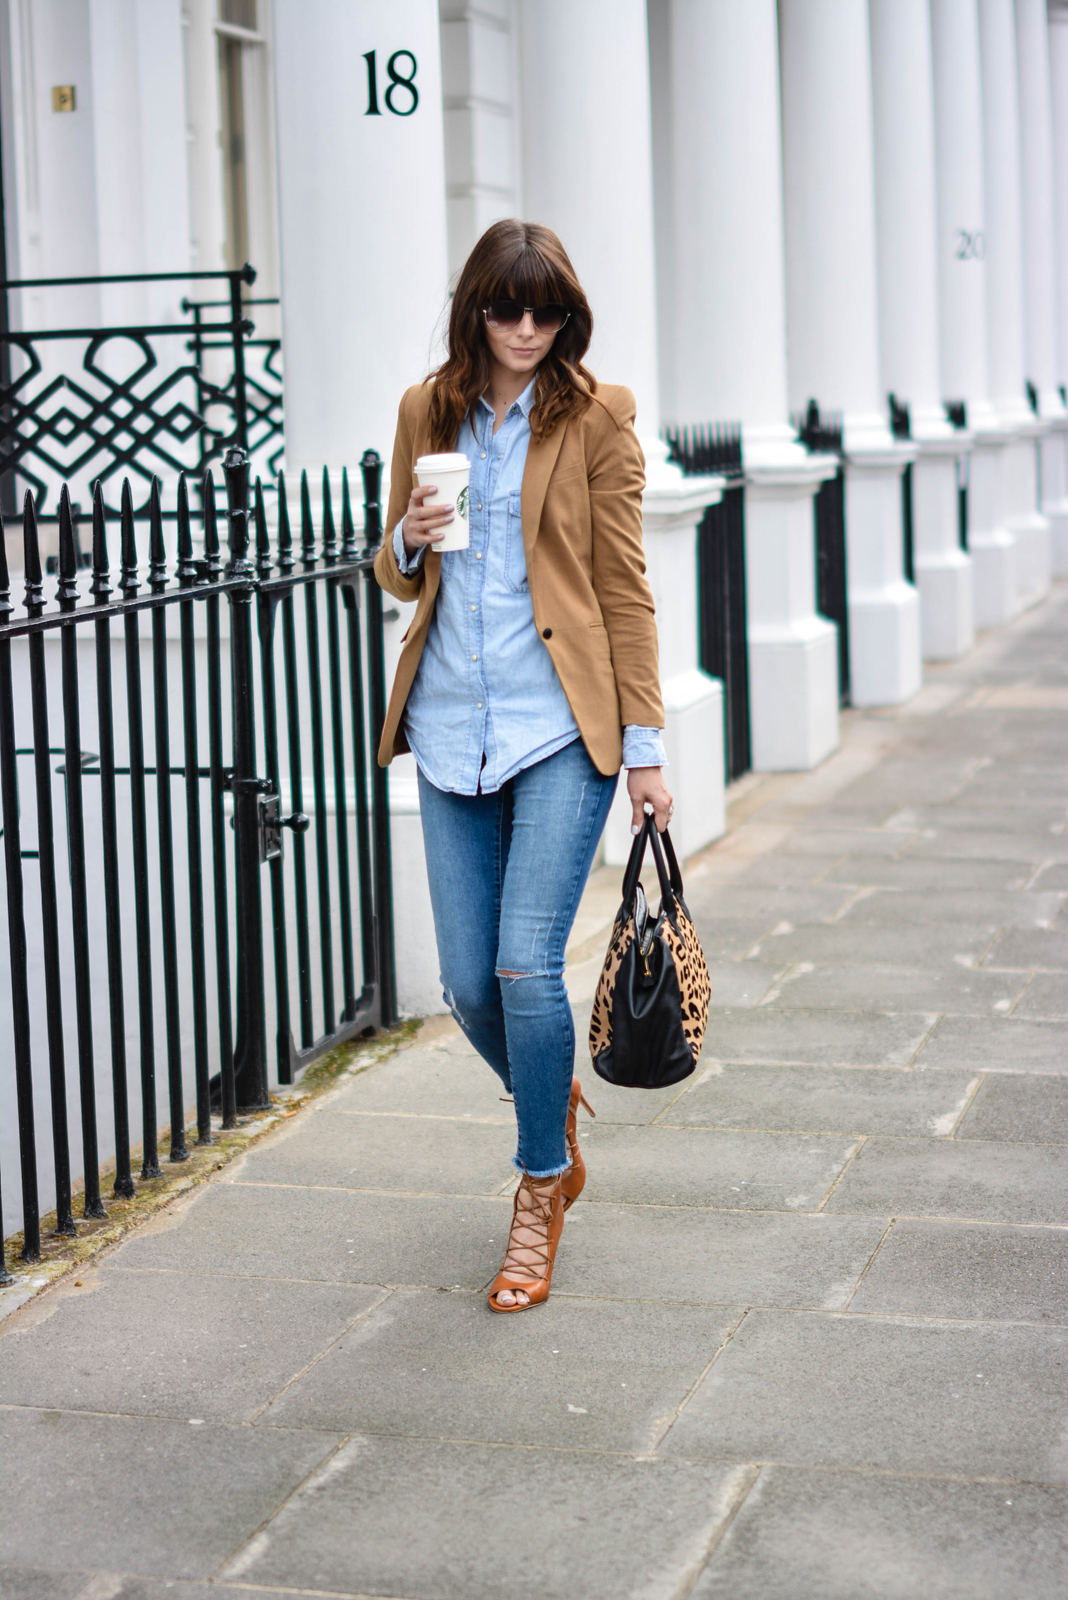 EJSTYLE - Emma Hill, Sante Shoes tan leather lace up sandals, raw hem ripped River Island skinny jeans, Forever 21 Camel blazer, Denim shirt, Leopard print ponyskin leather bag, double denim outfit, fashion blogger